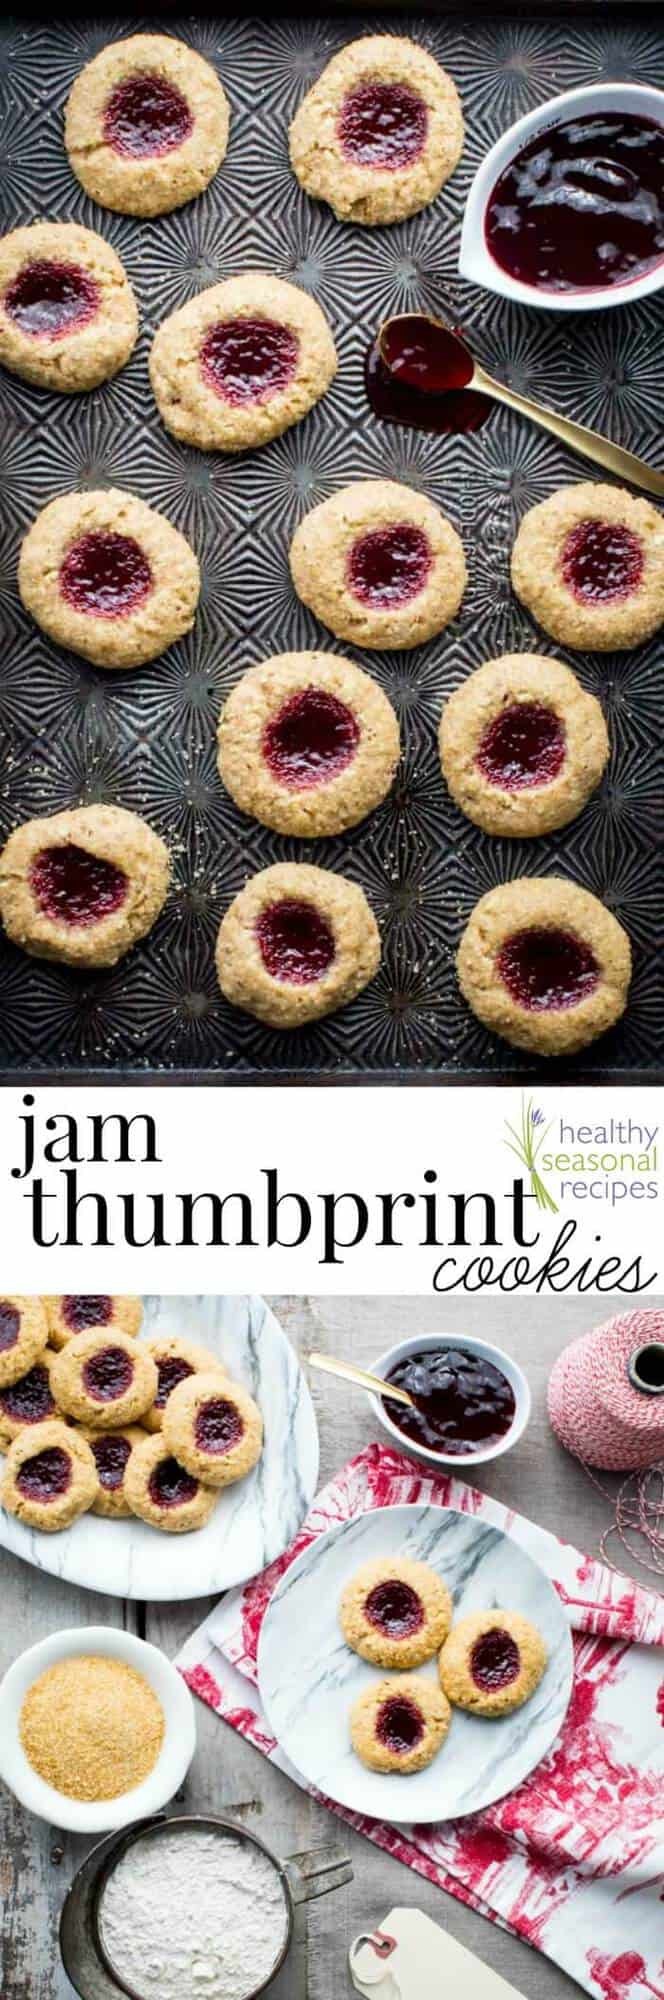 I can't wait for you to try these healthy holiday Jam Thumbprint Cookies. They have the flavors of a linzer torte (raspberry and almond) and make the perfect classic Christmas Cookie! #holidaycookie #Christmas #holidaybaking #vegetarian #holiday #cookieswap #healthyrecipe #thumbprintcookie